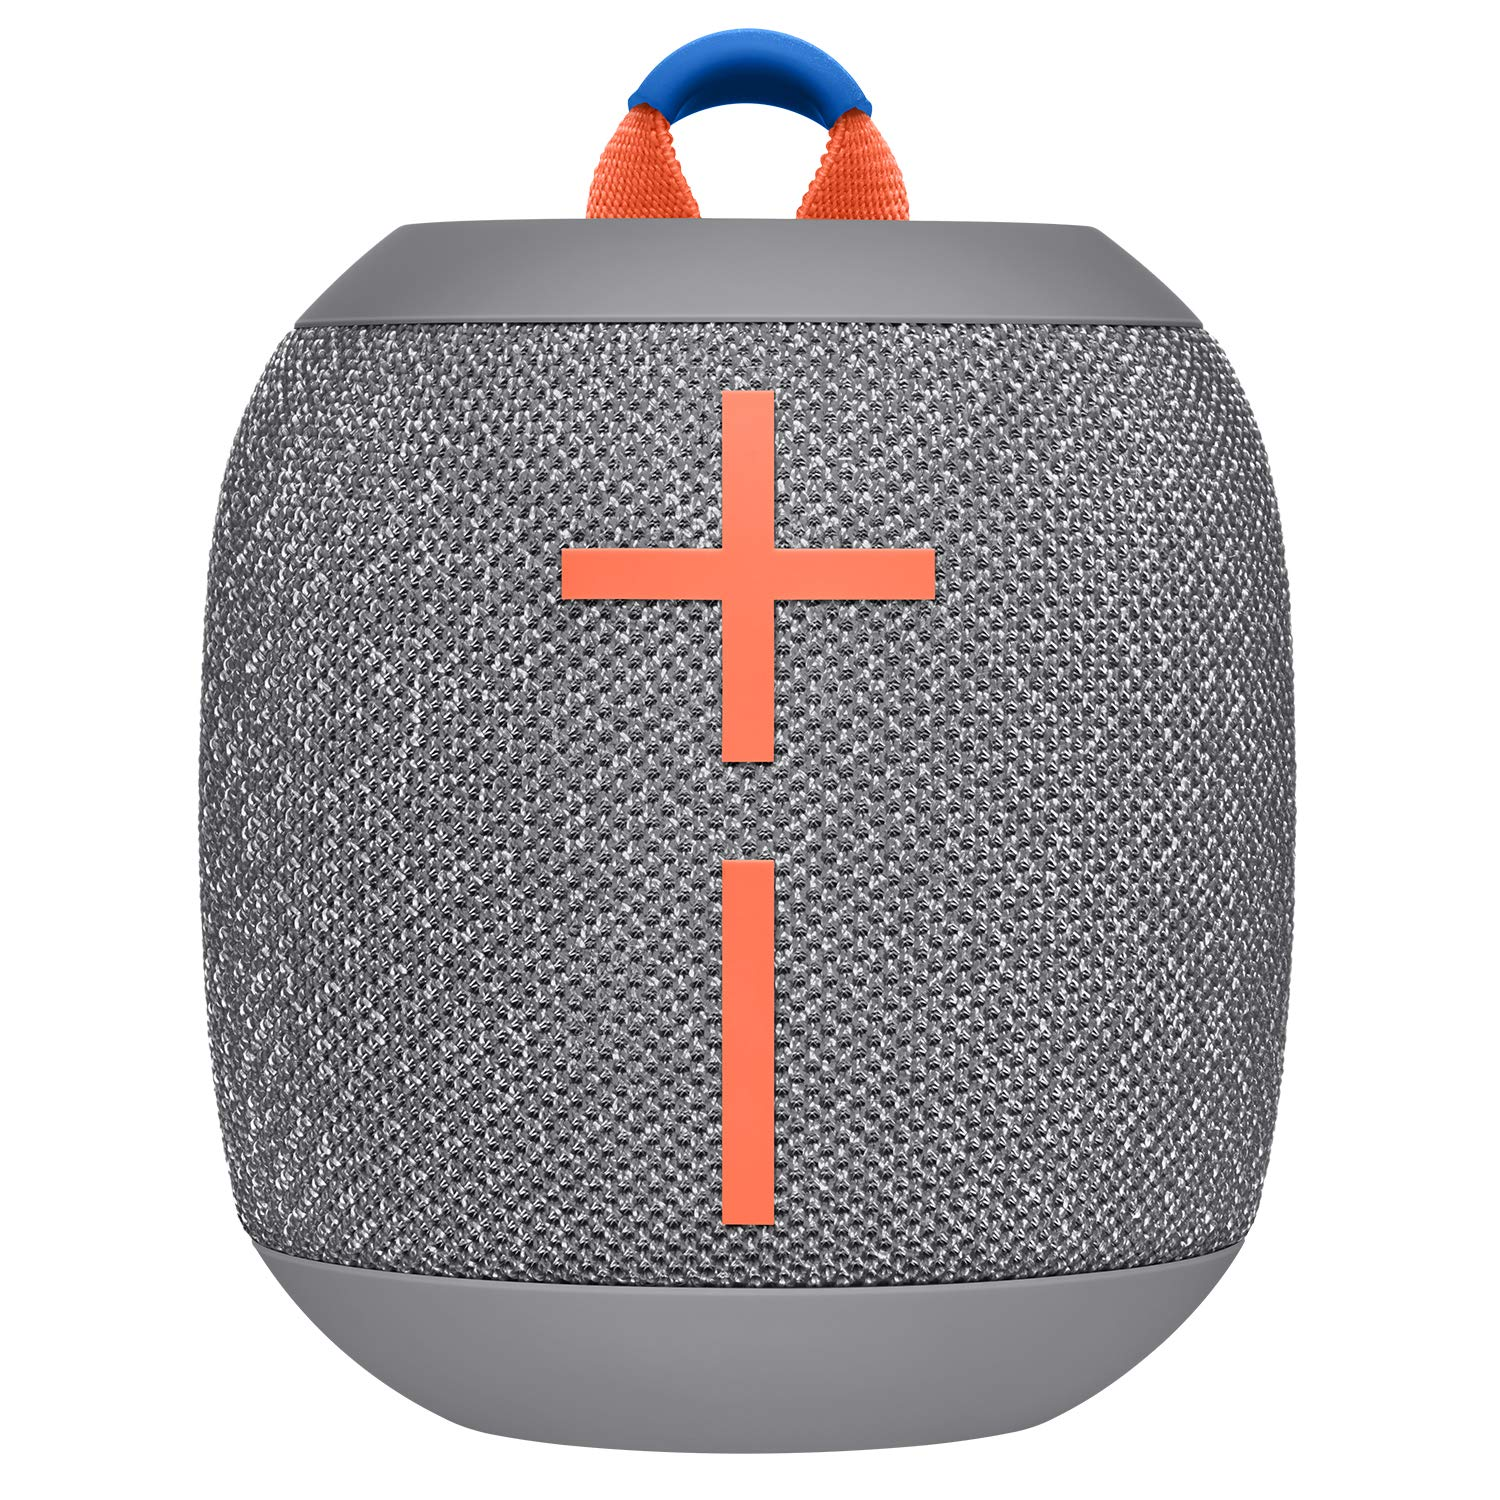 Parlante inalambrico ULTIMATE EARS WONDERBOOM 2, gris